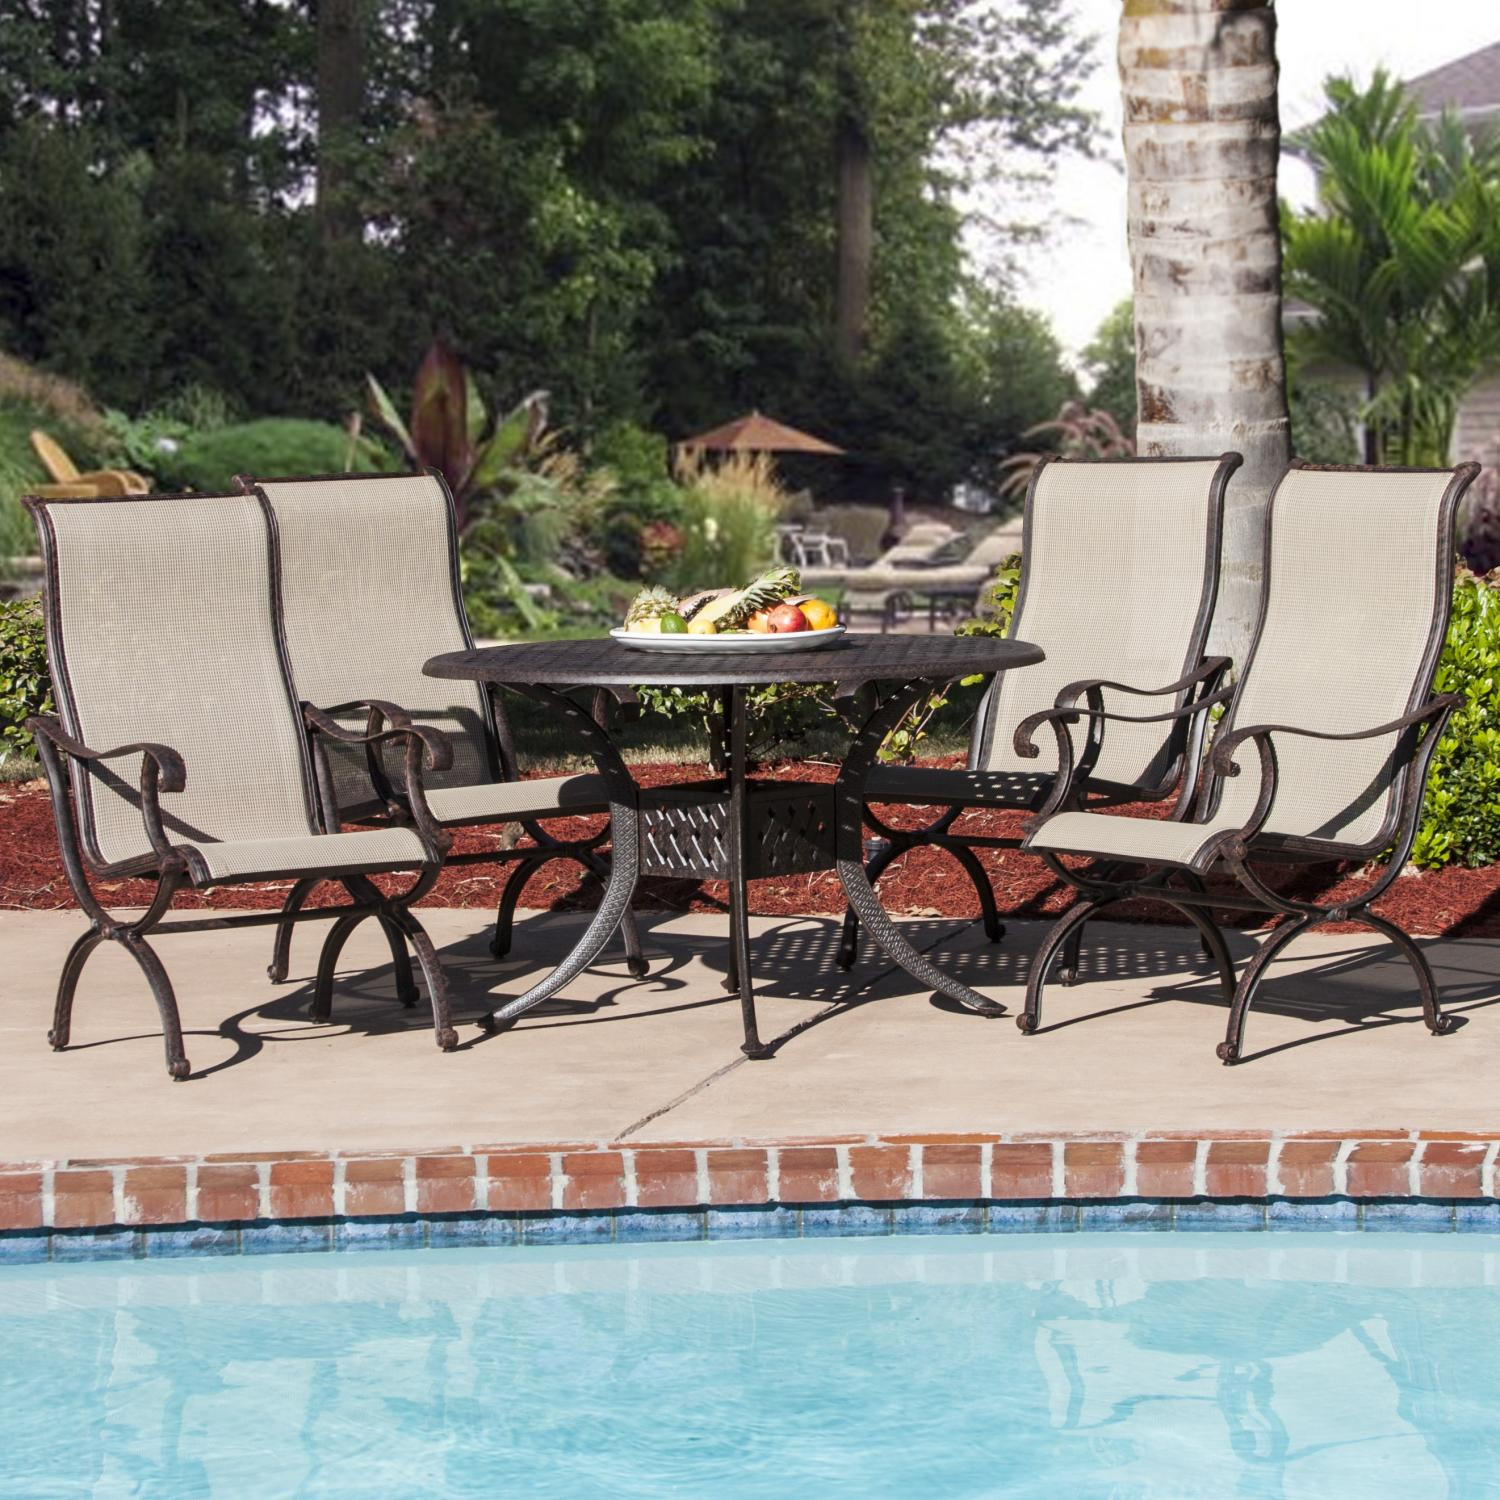 Budget Patio Dining Set: Cheap Patio Dining Sets